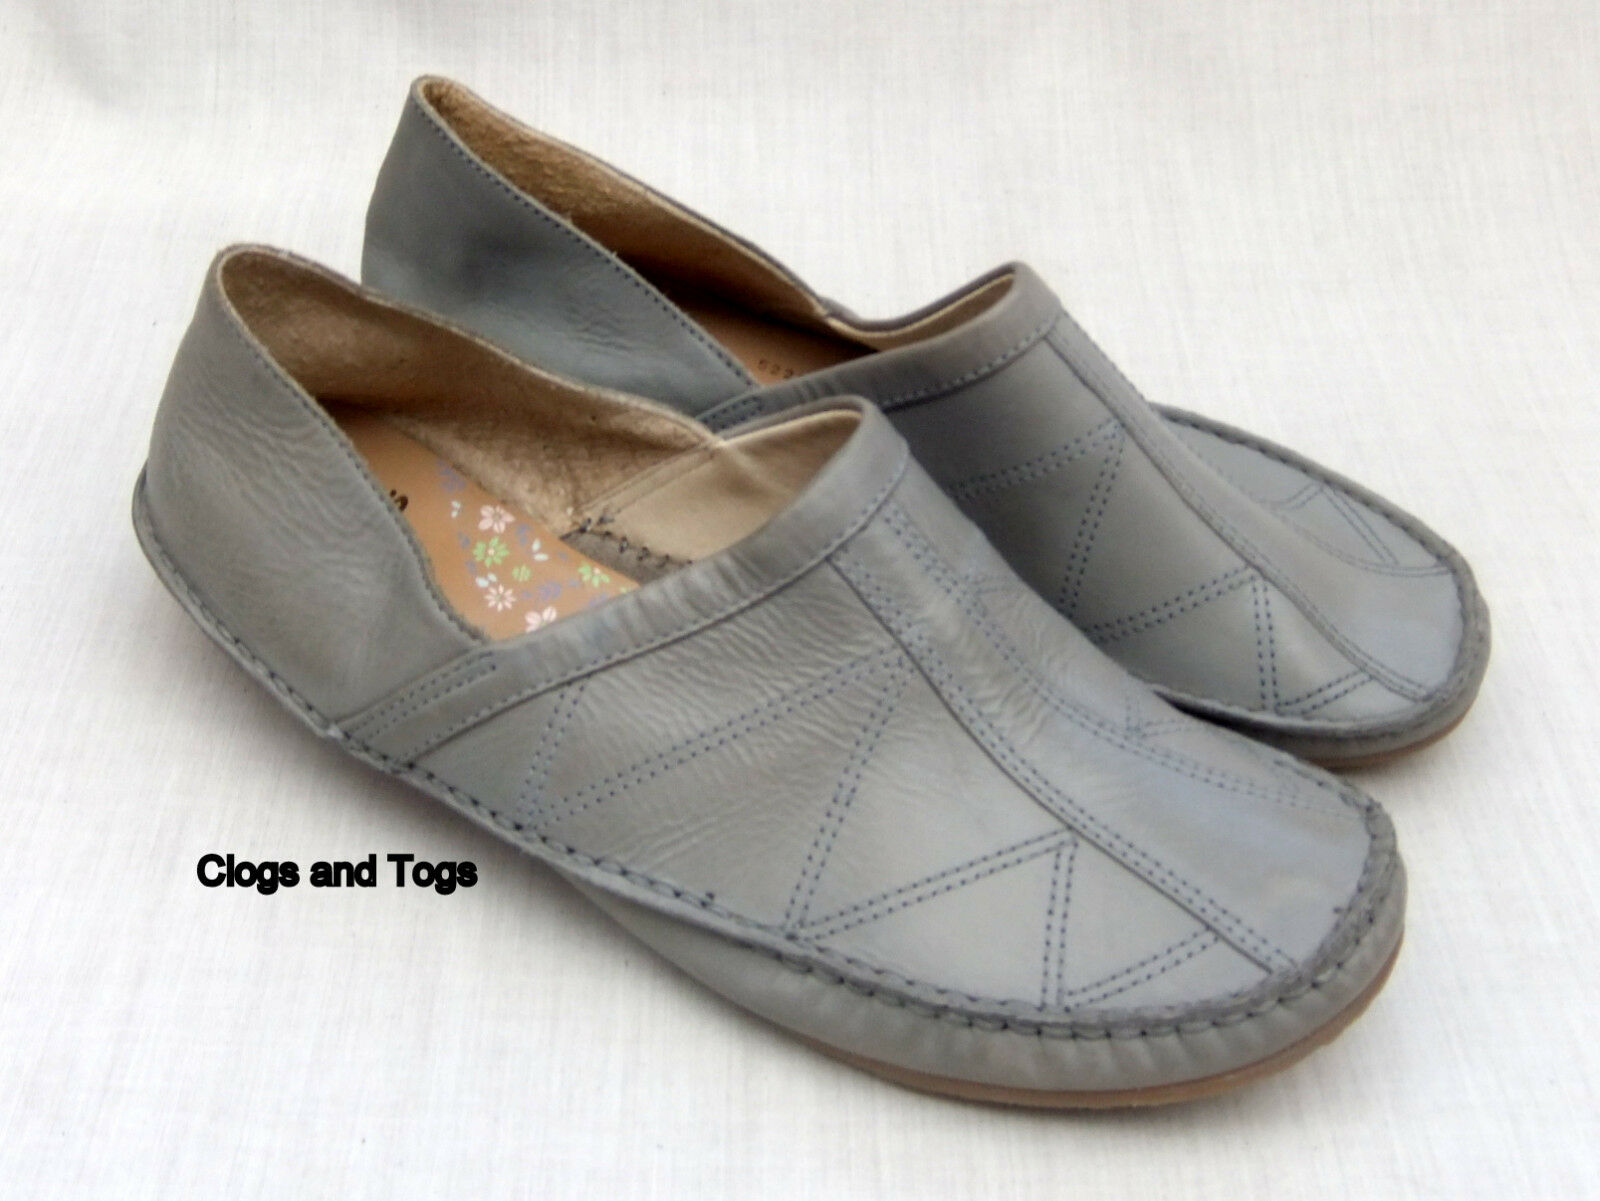 NEW CLARKS GUADALOUPE femmes gris LEATHER chaussures Taille 5   38